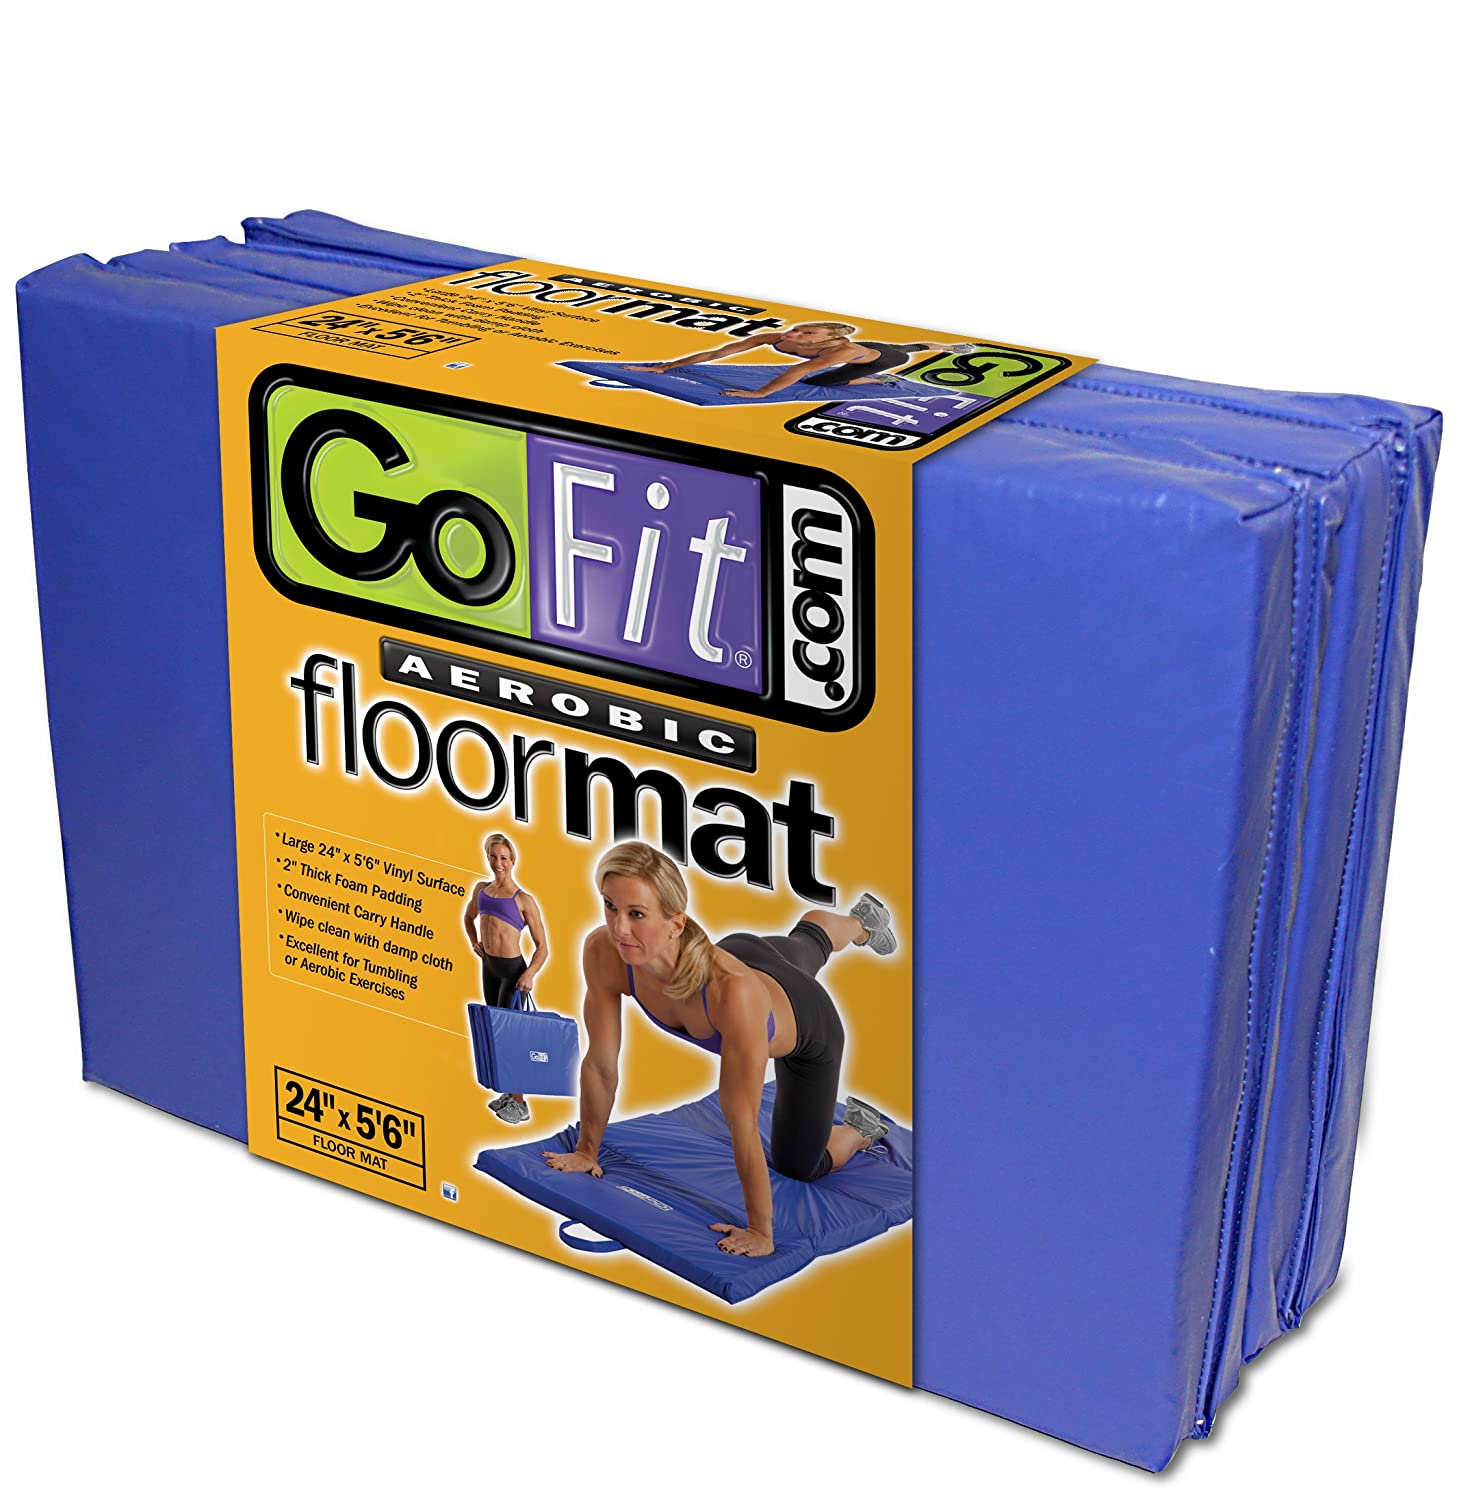 GoFit Foldable Foam Aerobic Floor Mat 24 X 5 6 Durable Padded Workout Mat with Carrying Handles